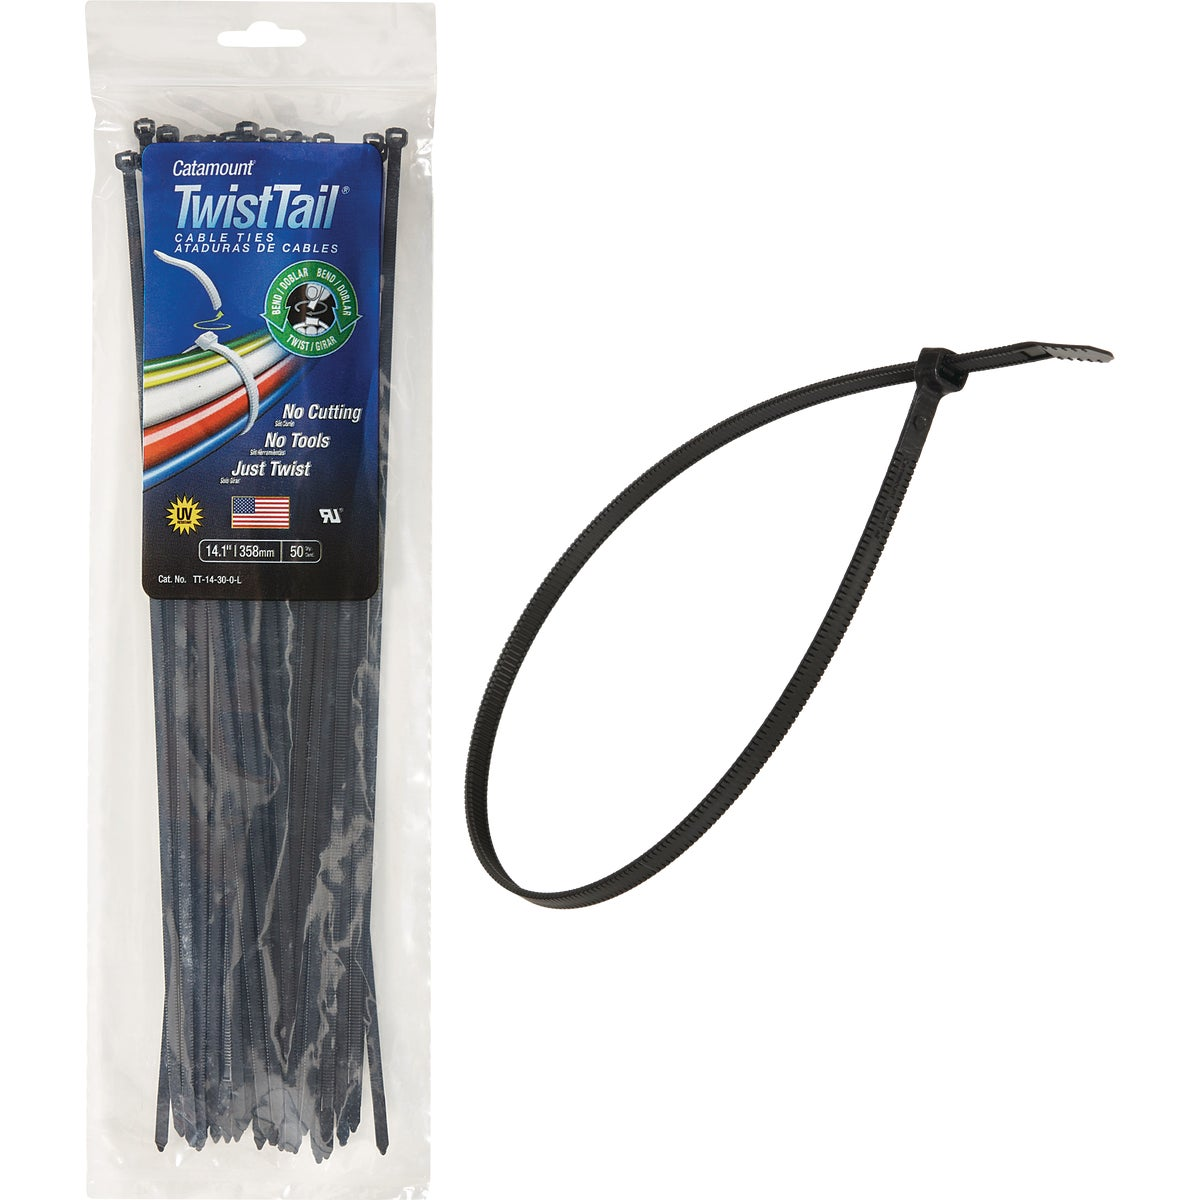 "50PC 14"" BLK TWIST TIE - TT-14-30-0-L by Thomas & Betts"